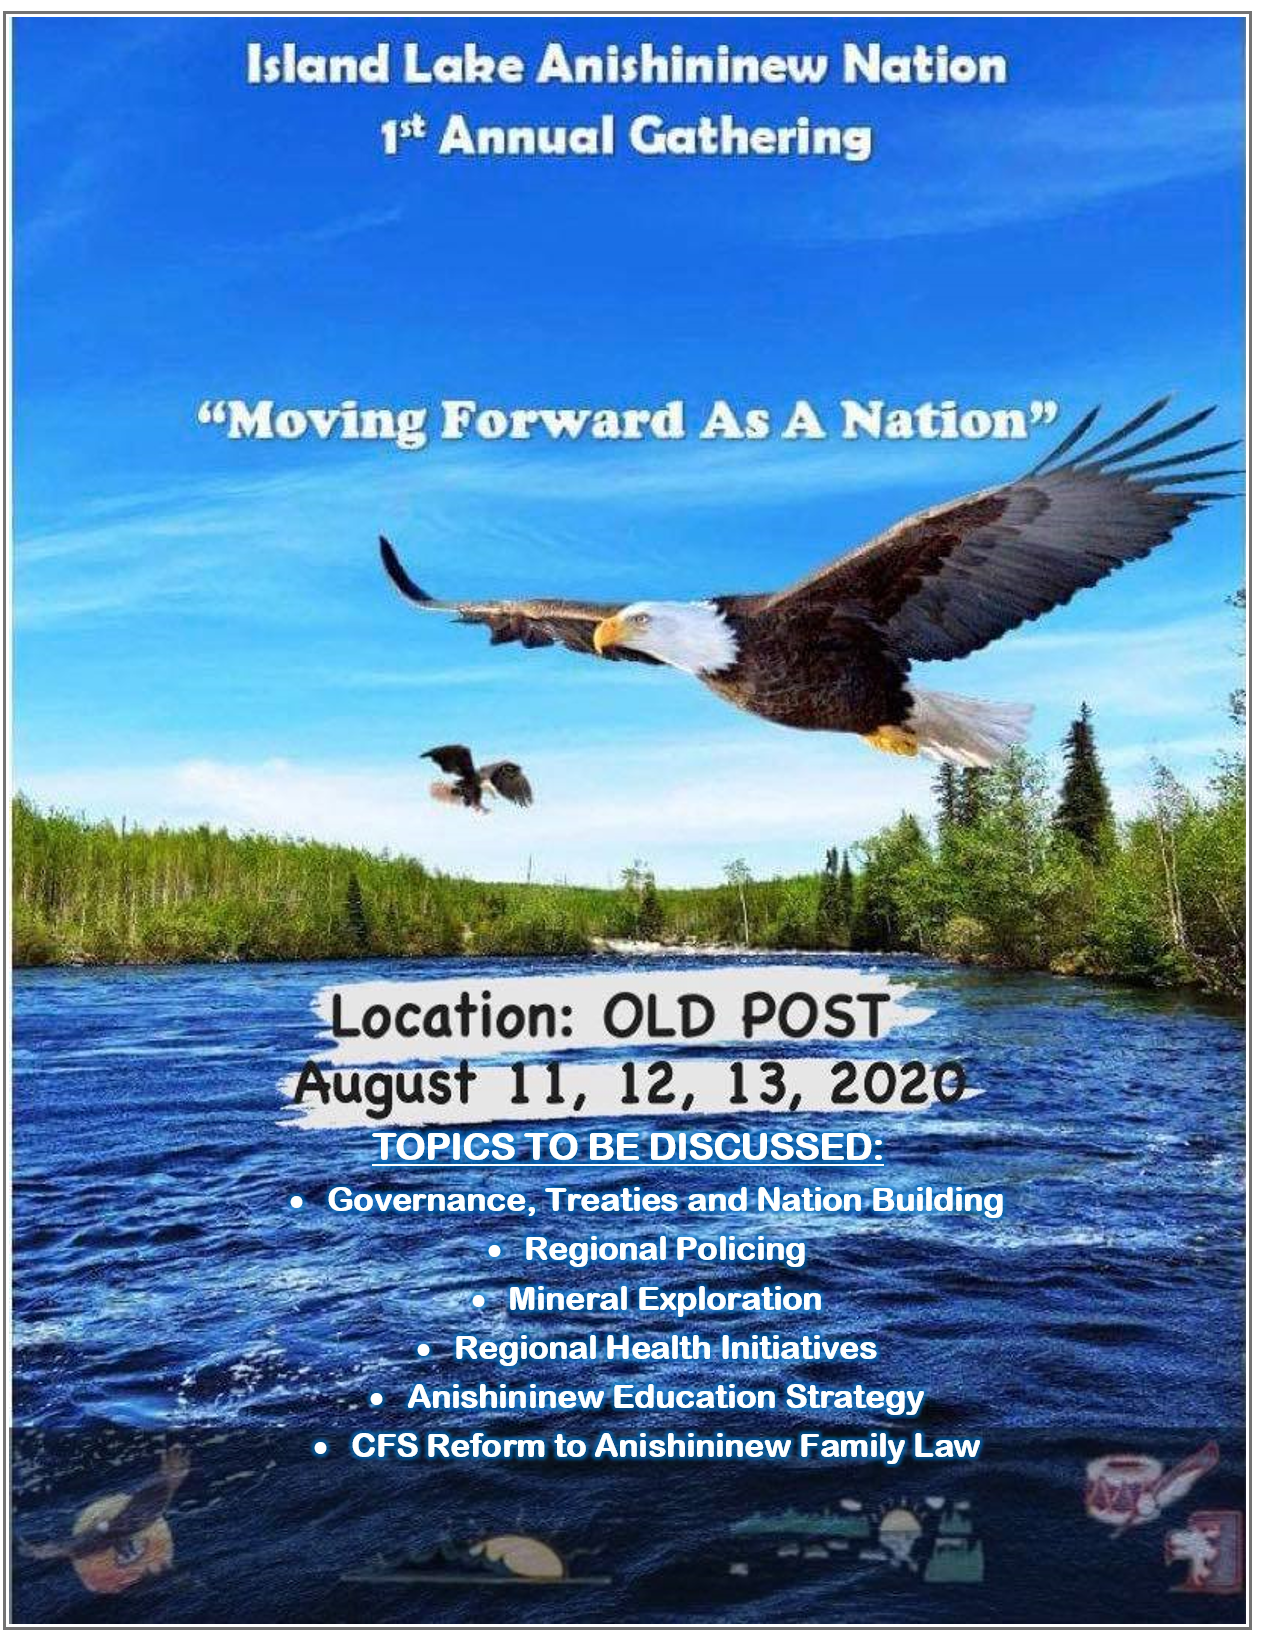 """Island Lake Anishininew Nation 1st Annual Gathering """"Moving Forward as A Nation"""" August 11, 12, 13, 2020"""